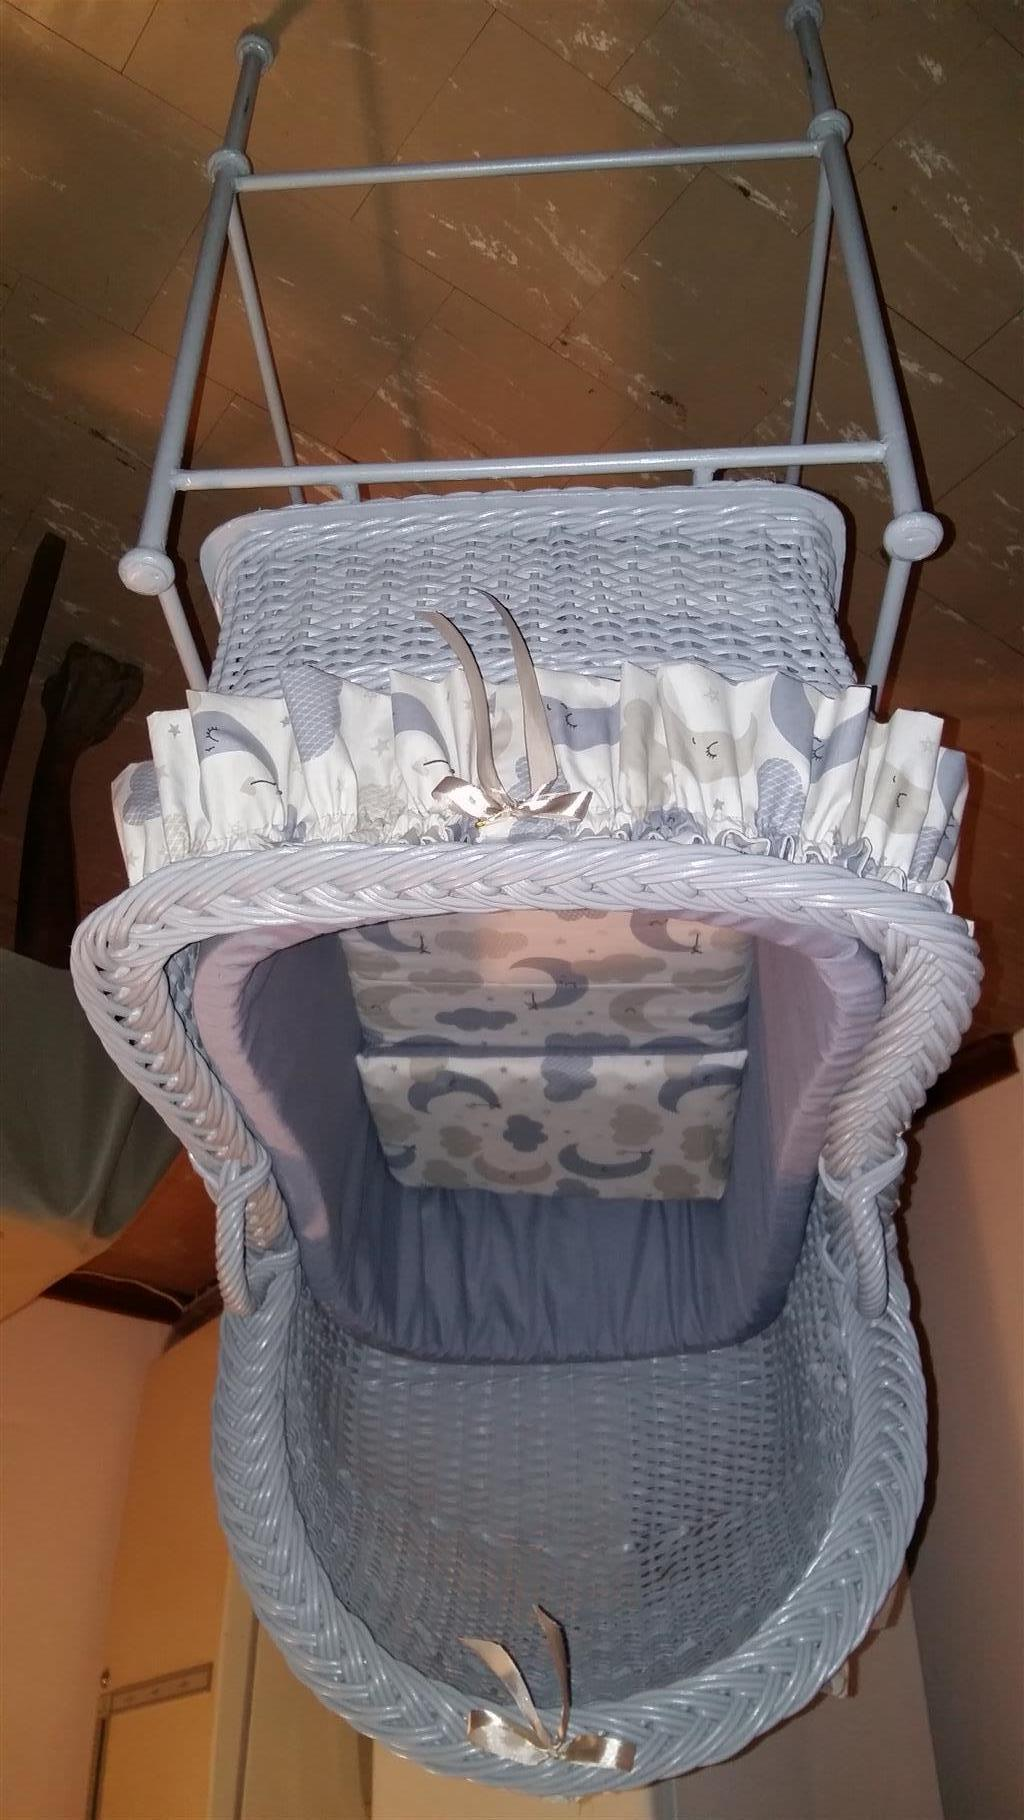 Baby cane crib with mattress, pillow, linen and steel stand.